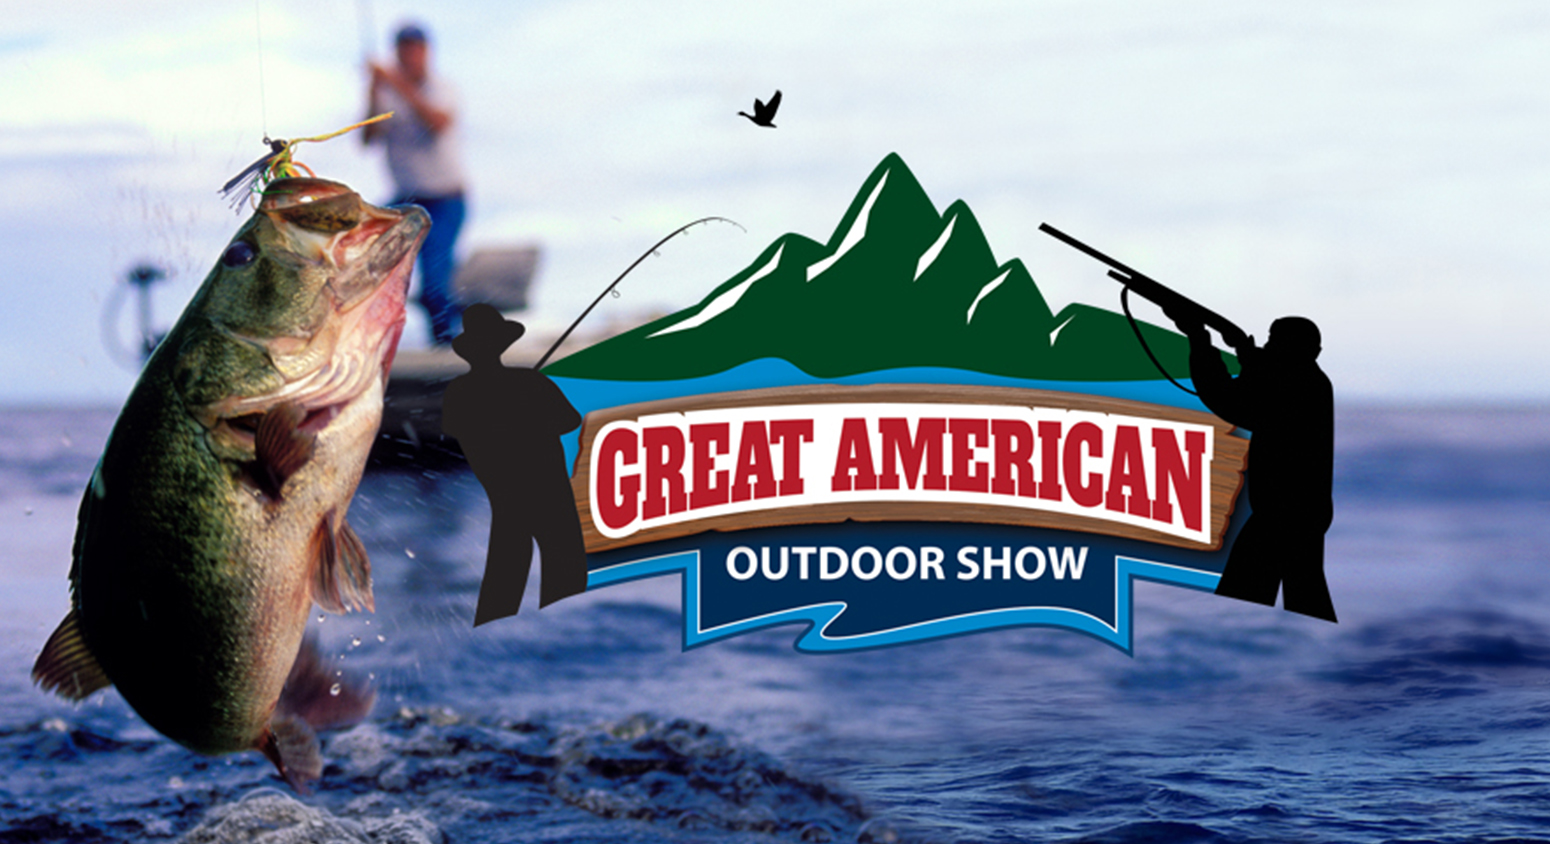 Great American Outdoor Show Events for Thursday February 11